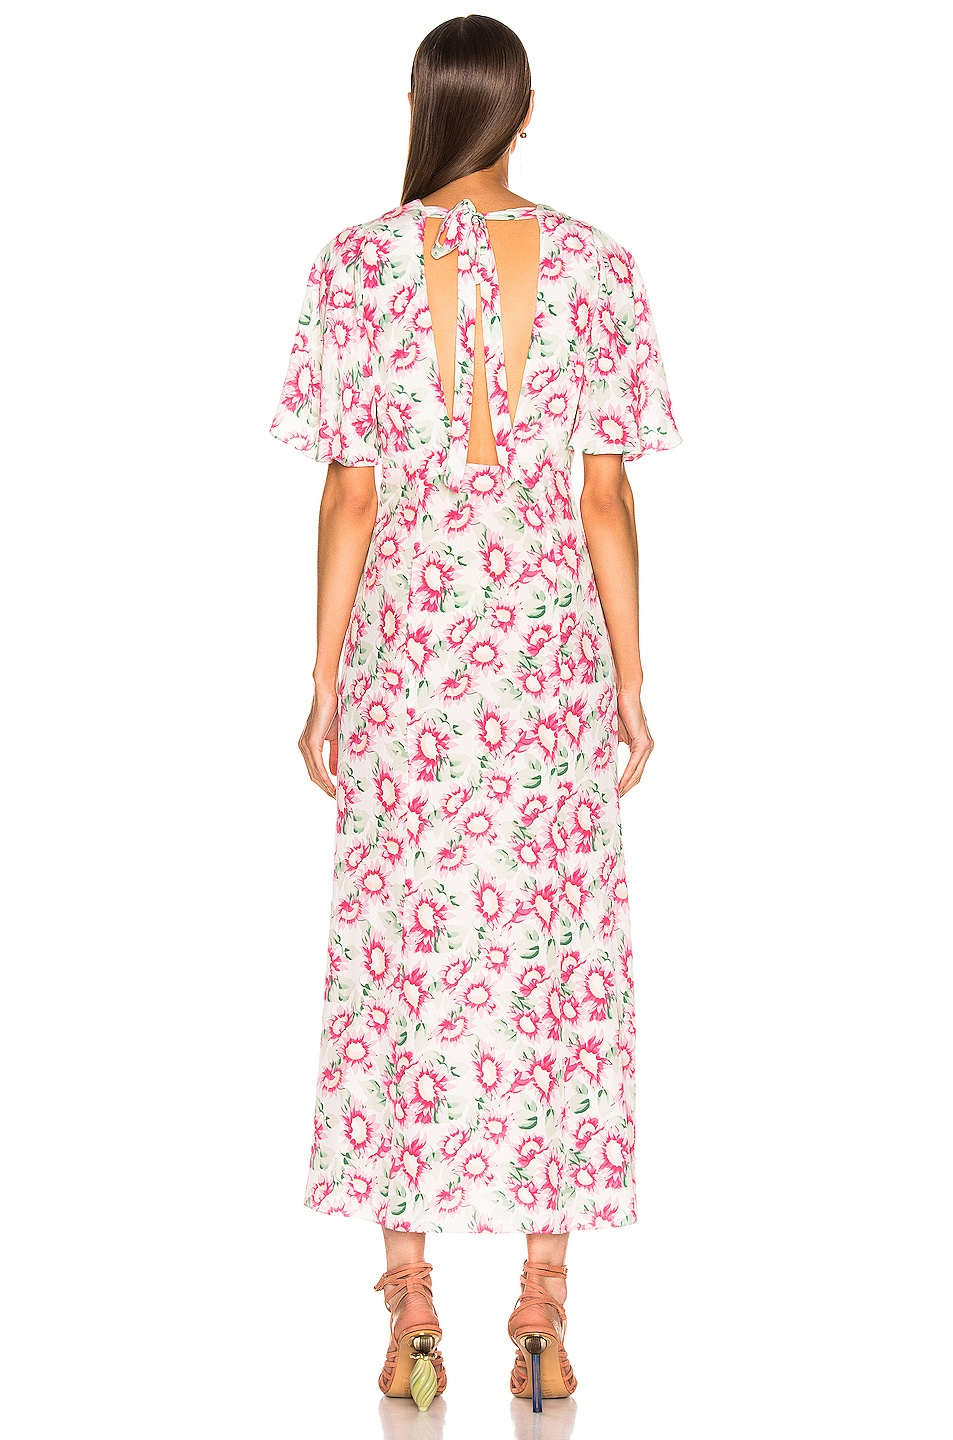 Image 3 of Les Reveries Deep Neck Petal Sleeve Dress in Pink Daisy White